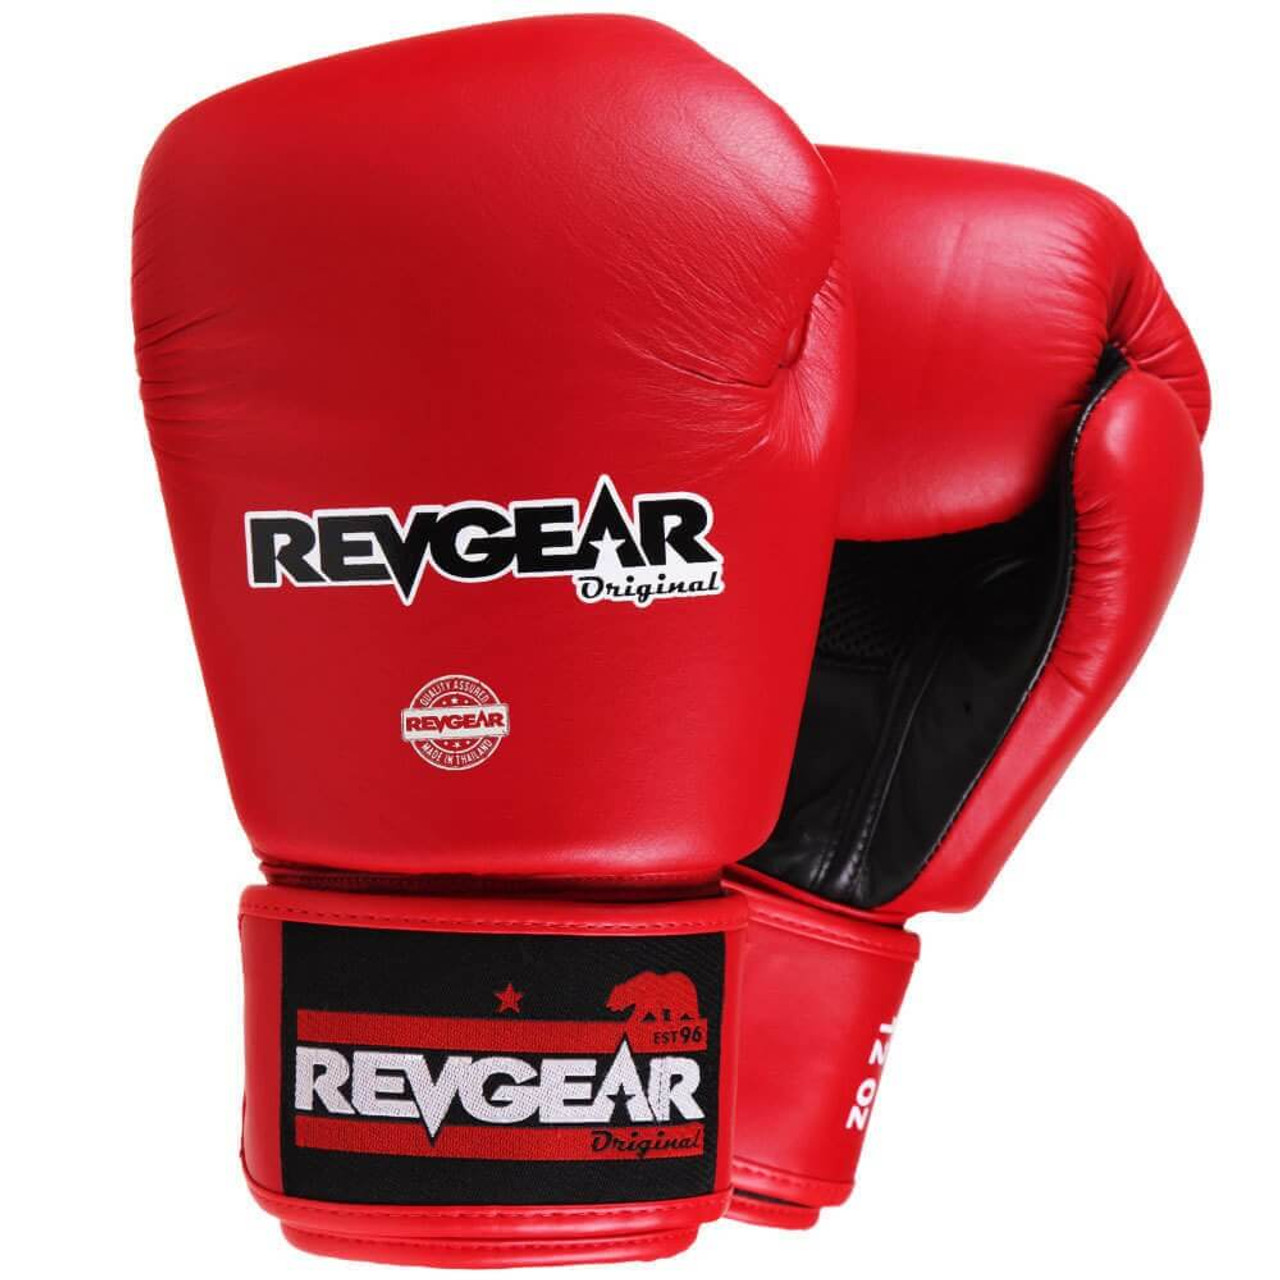 Thai Original Boxing Gloves - Red